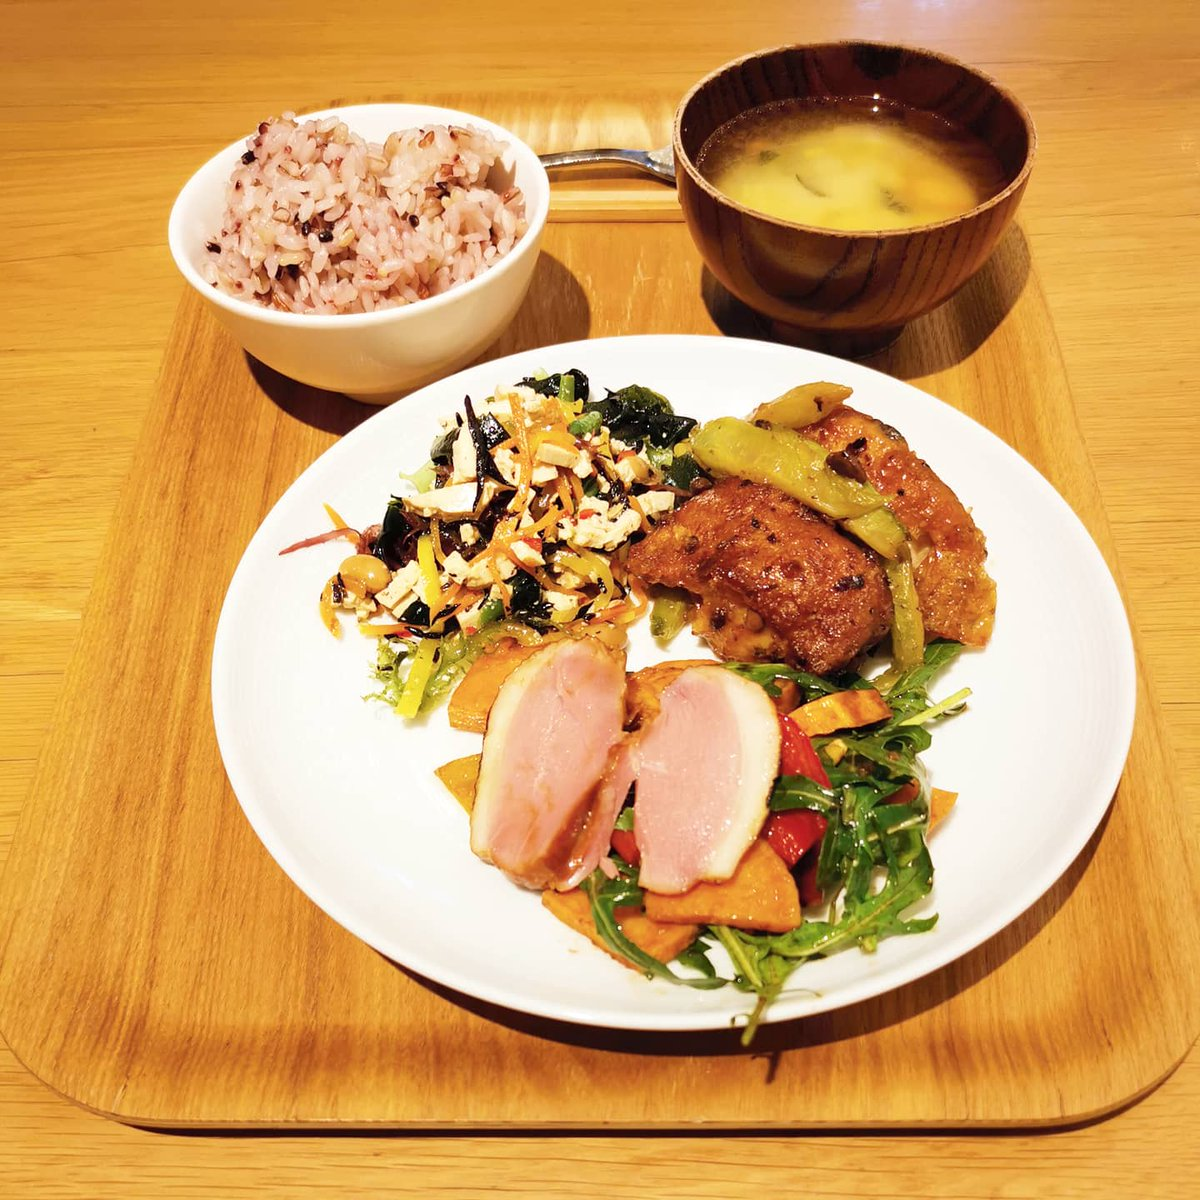 Healthy meal #smokedduck #salad #riso #arroz #lunch #almuerzo #rice #veggies #ketodiet #pescado #miso #soup #meal #healthy #fitness #lifestyle #coffee #tea #eatout #abendessen #Muji #無印良品 #料理写真 #おいしい #저녁식사 https://t.co/i6j6SCdzF1